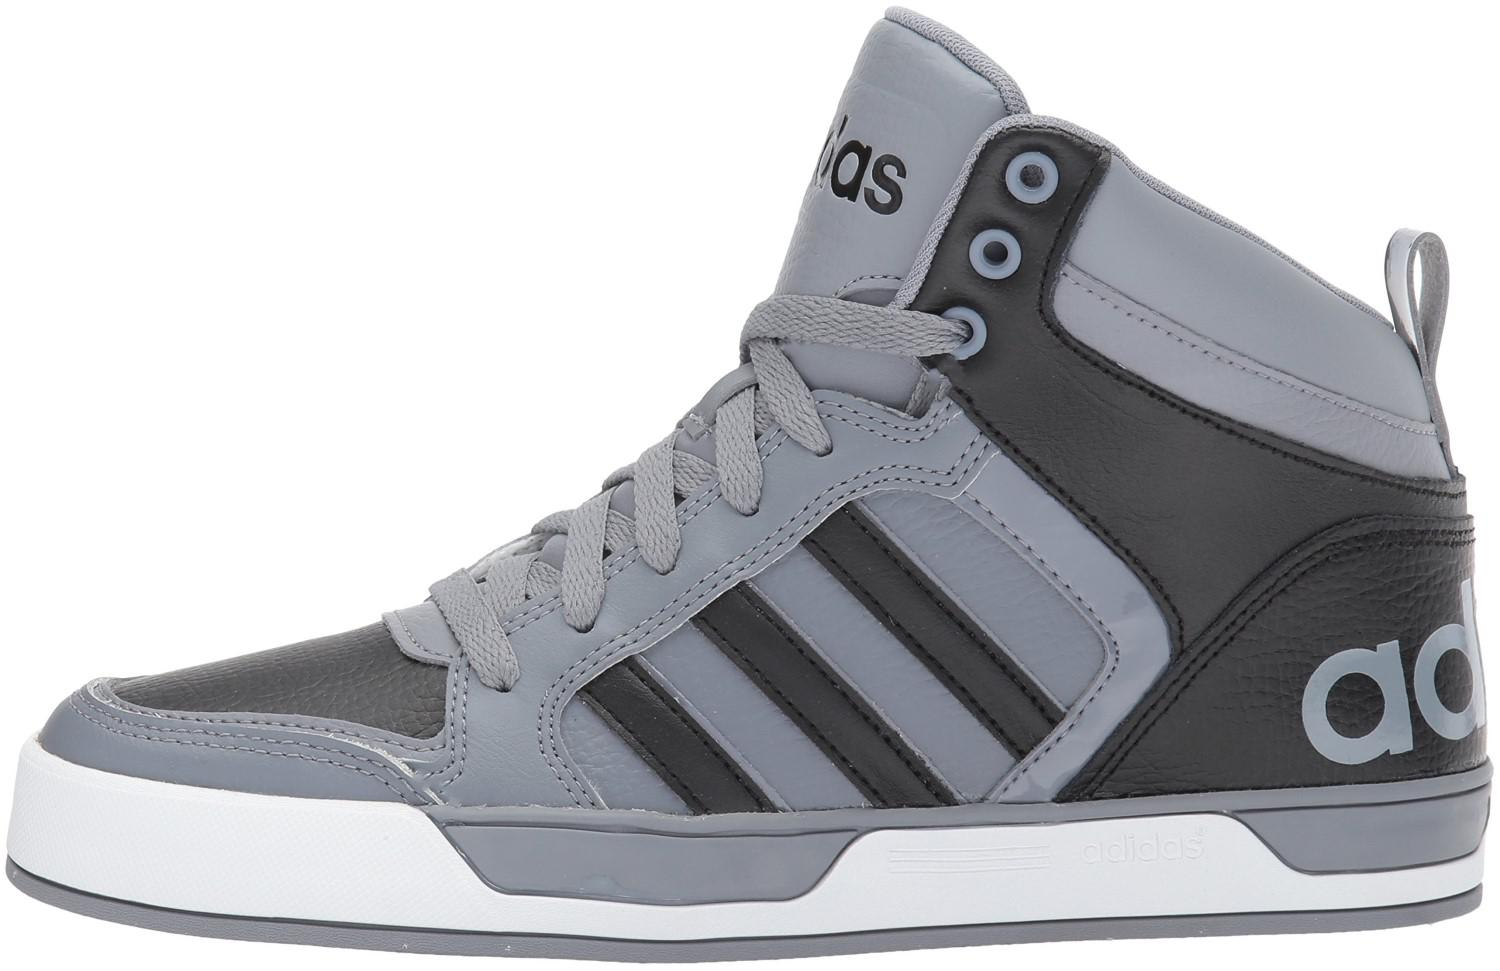 f0e730cbc37c Lyst - adidas Neo Raleigh 9tis Mid Basketball Shoe - - - 11 in Gray ...